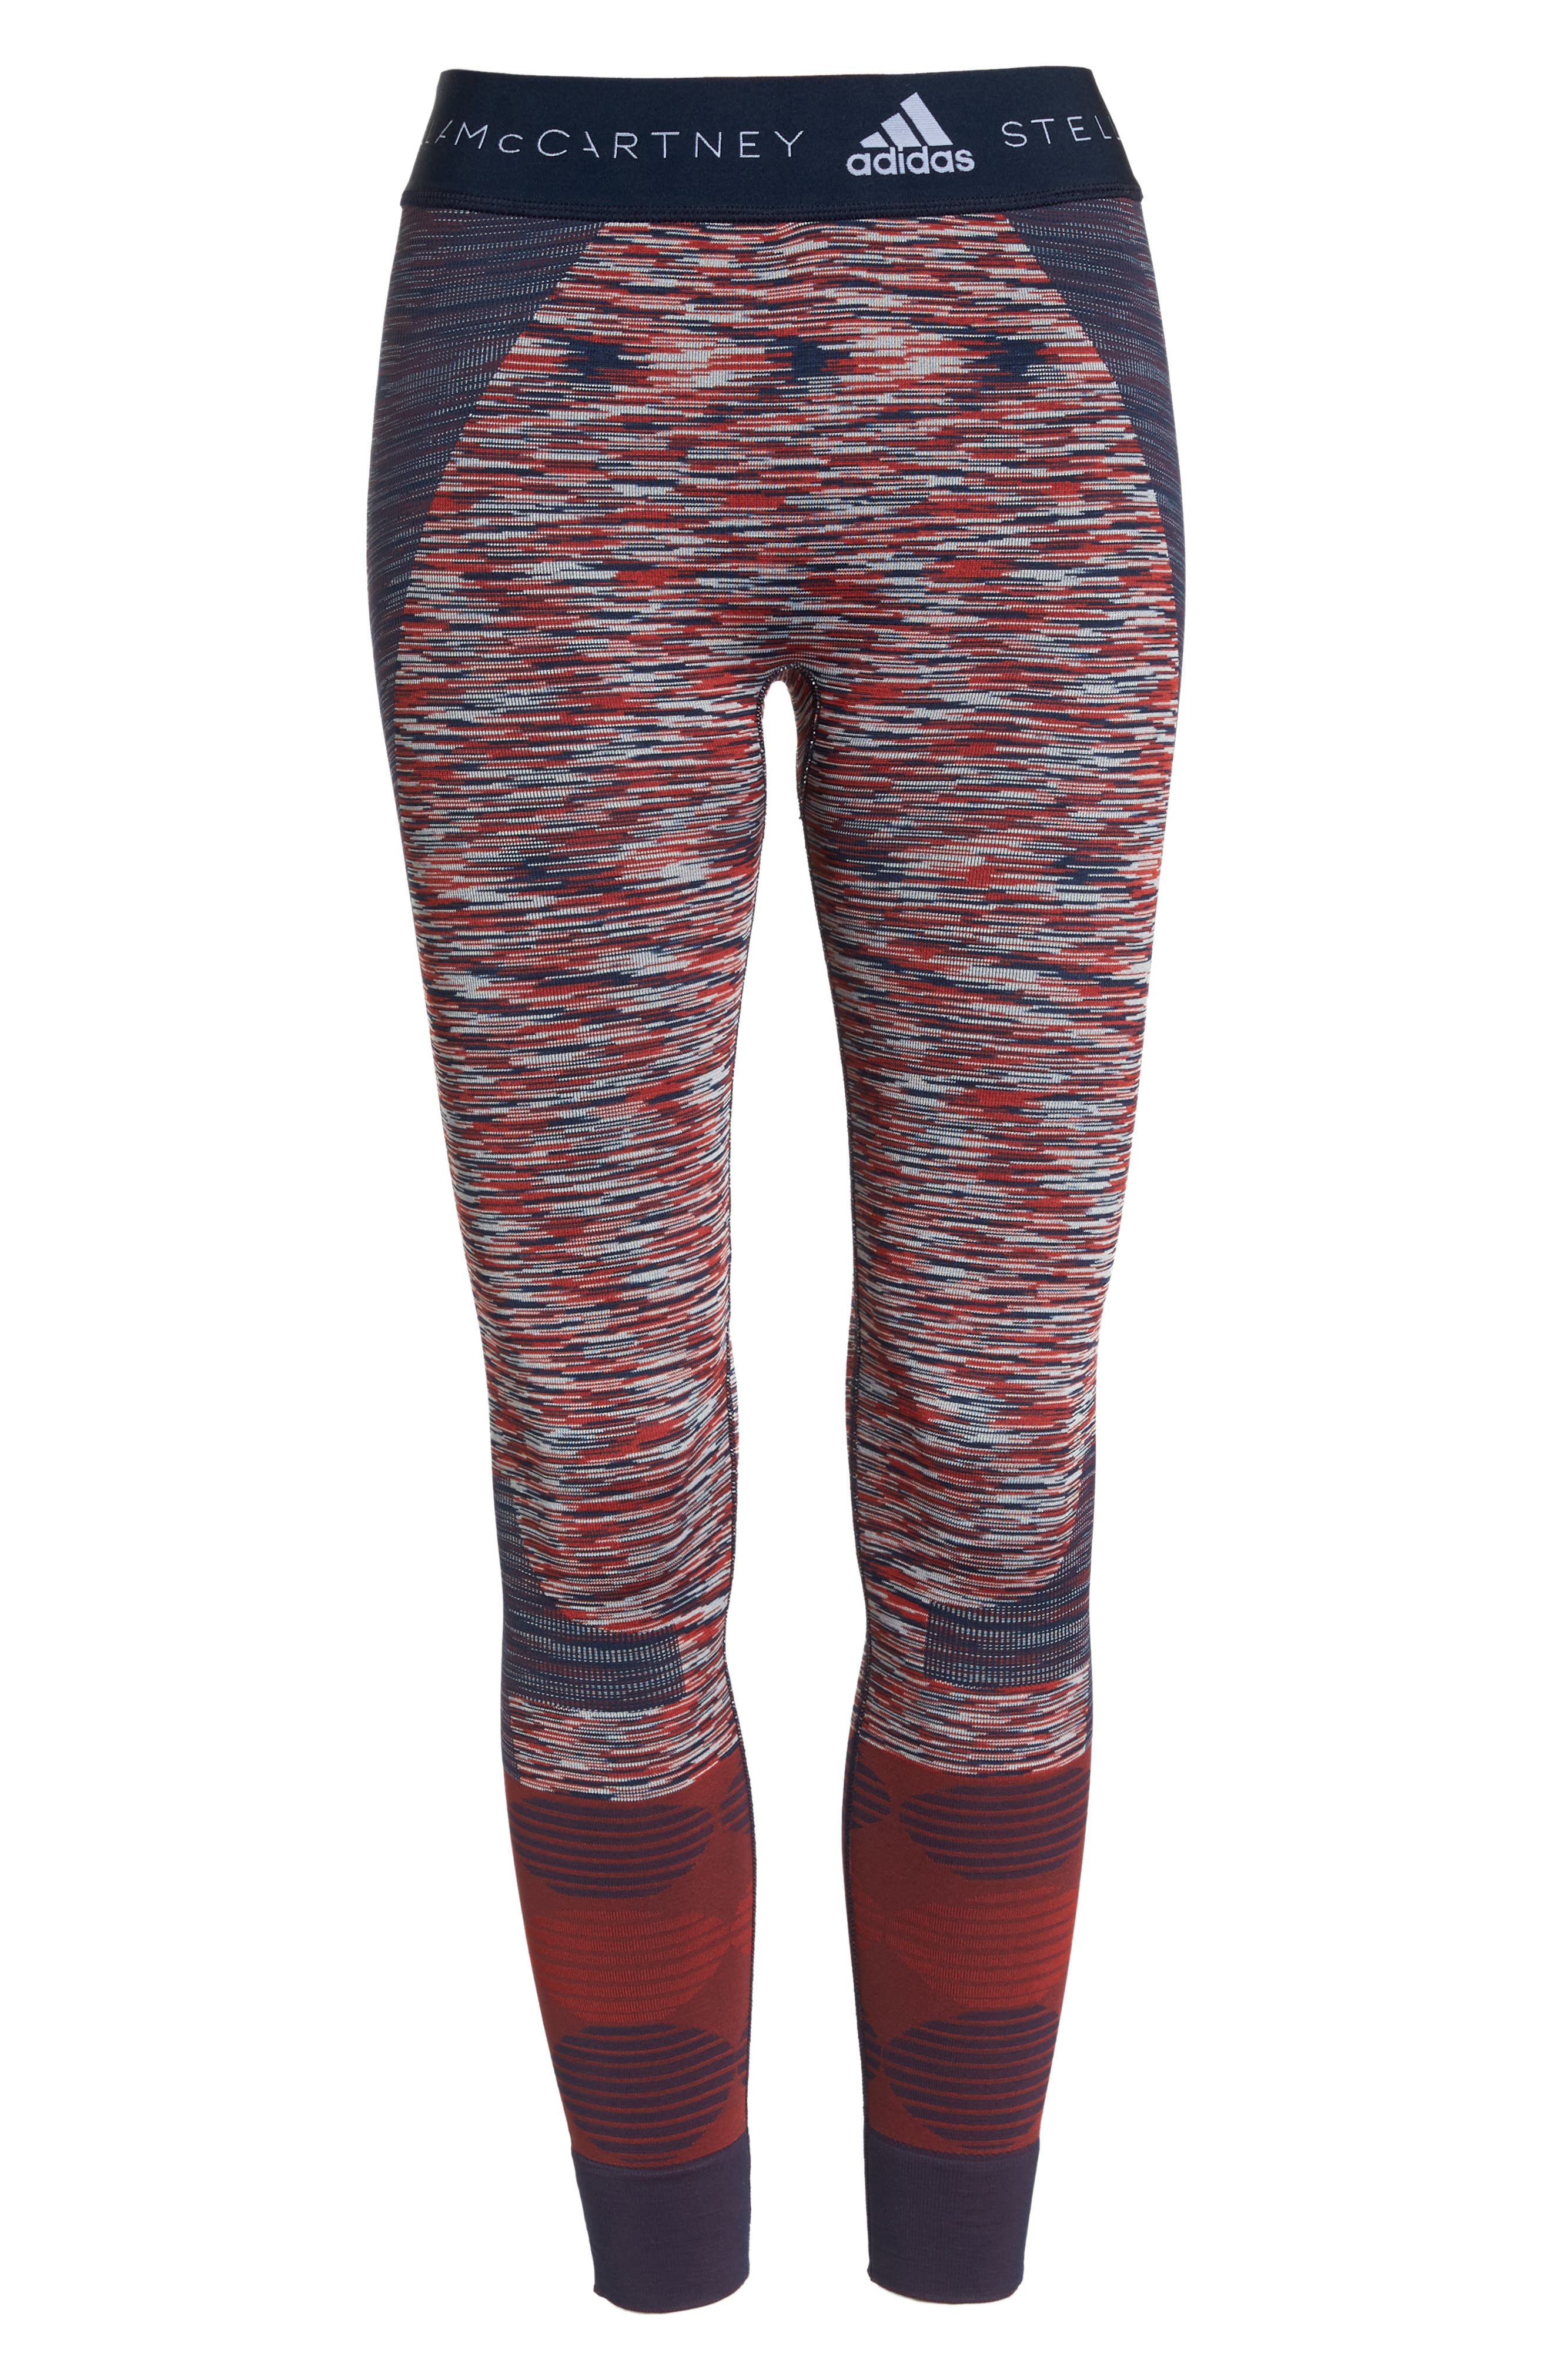 Yoga Seamless Space Dye Leggings,                             Alternate thumbnail 7, color,                             Navy